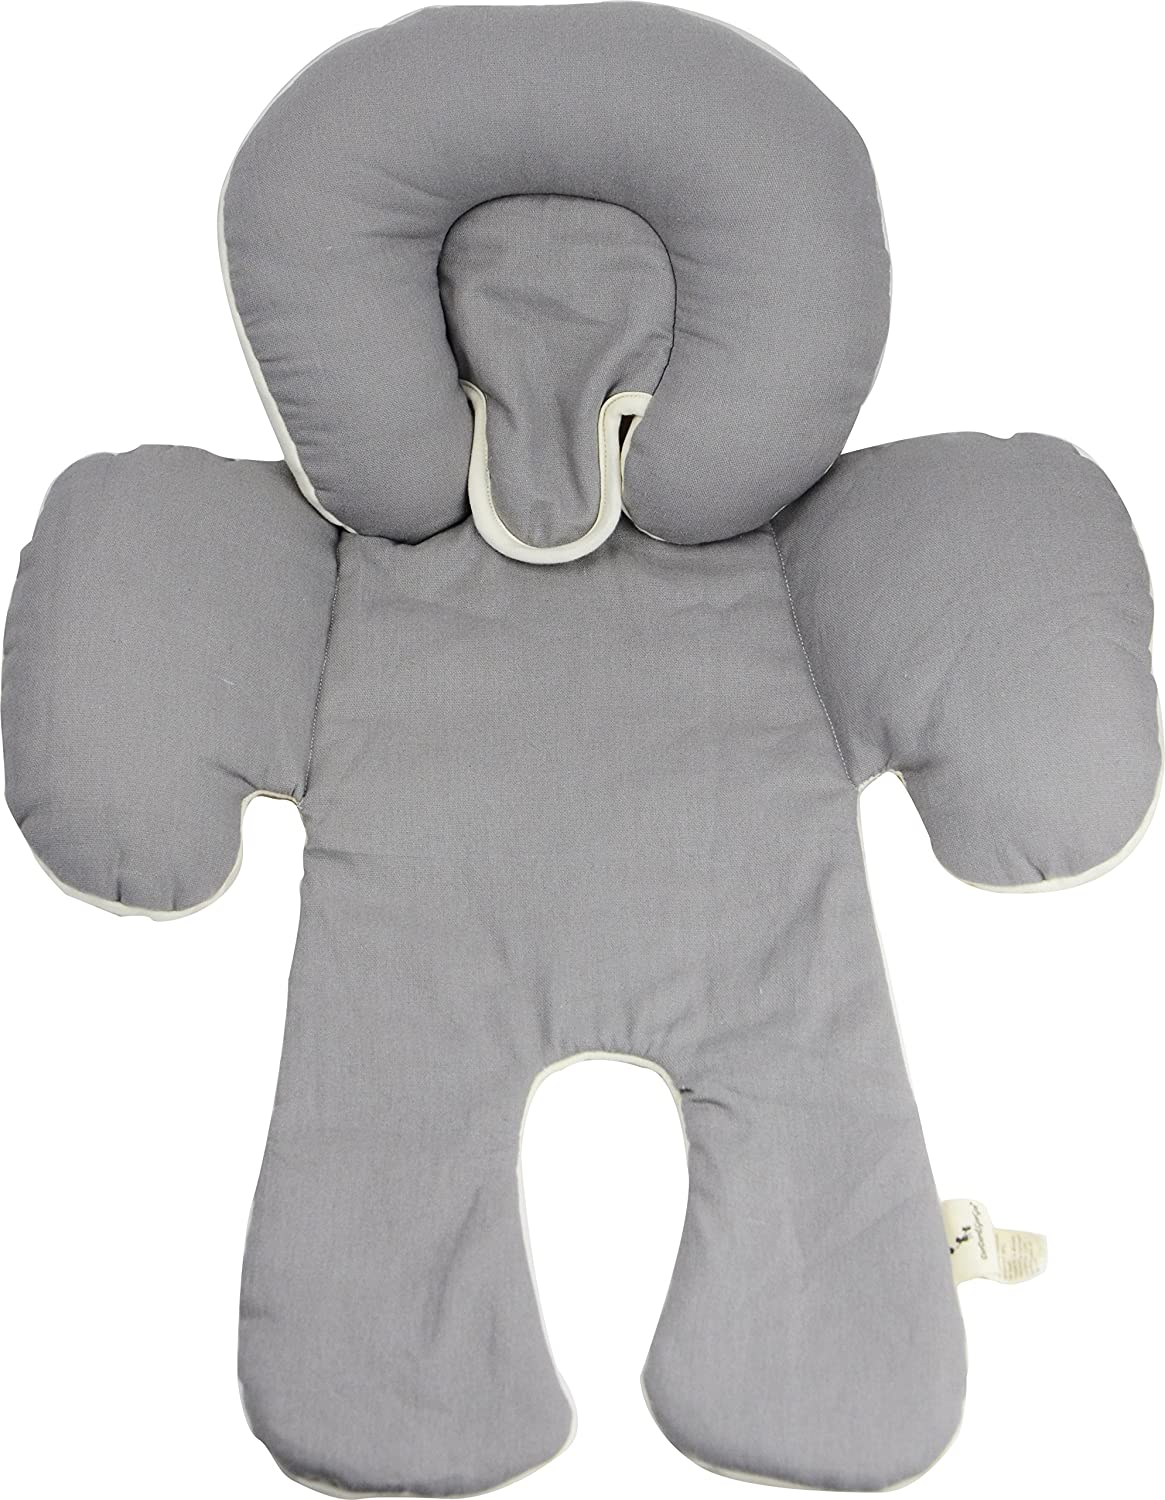 DorDor & GorGor CuddleME Infant Head Support with Organic Cotton, 2-in-1 Reversible, Gray Happy Show International Inc. BML019-GRAY-SELF